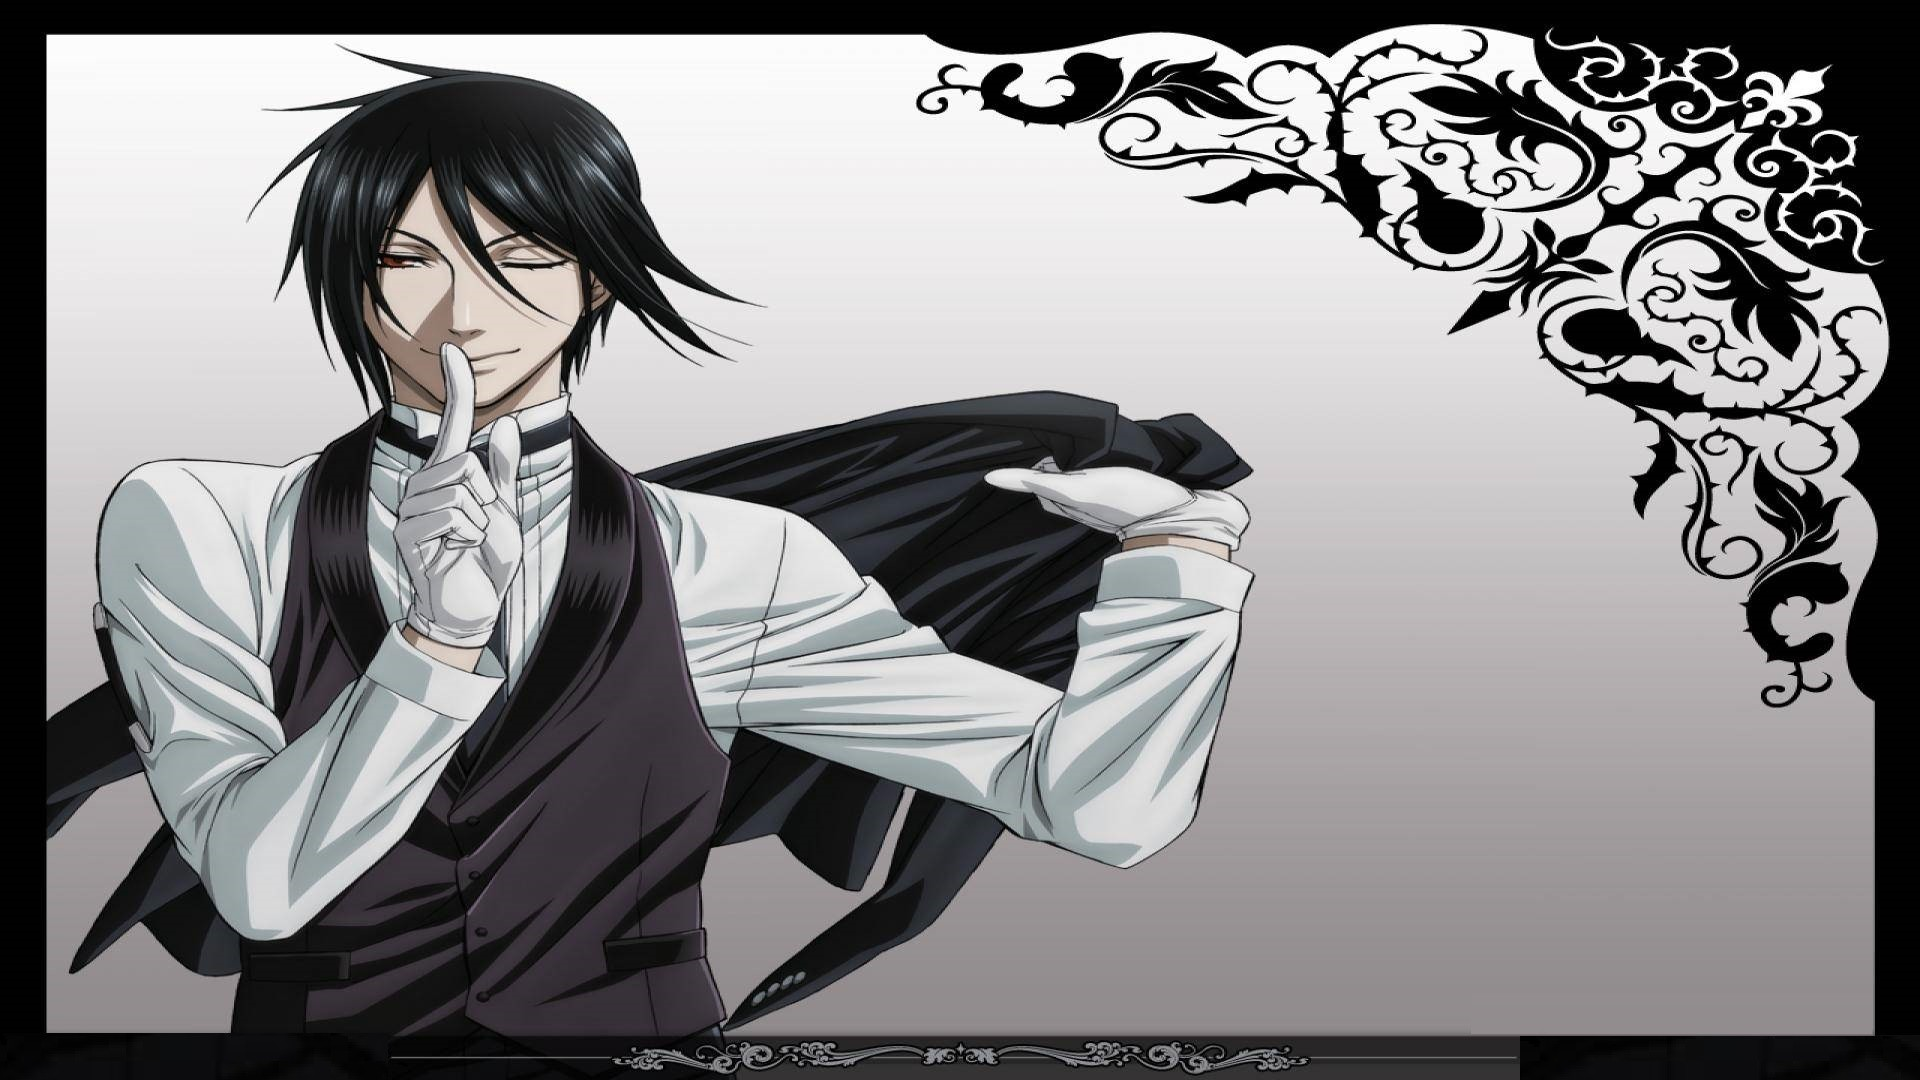 1920x1080 Images download black butler wallpapers HD.